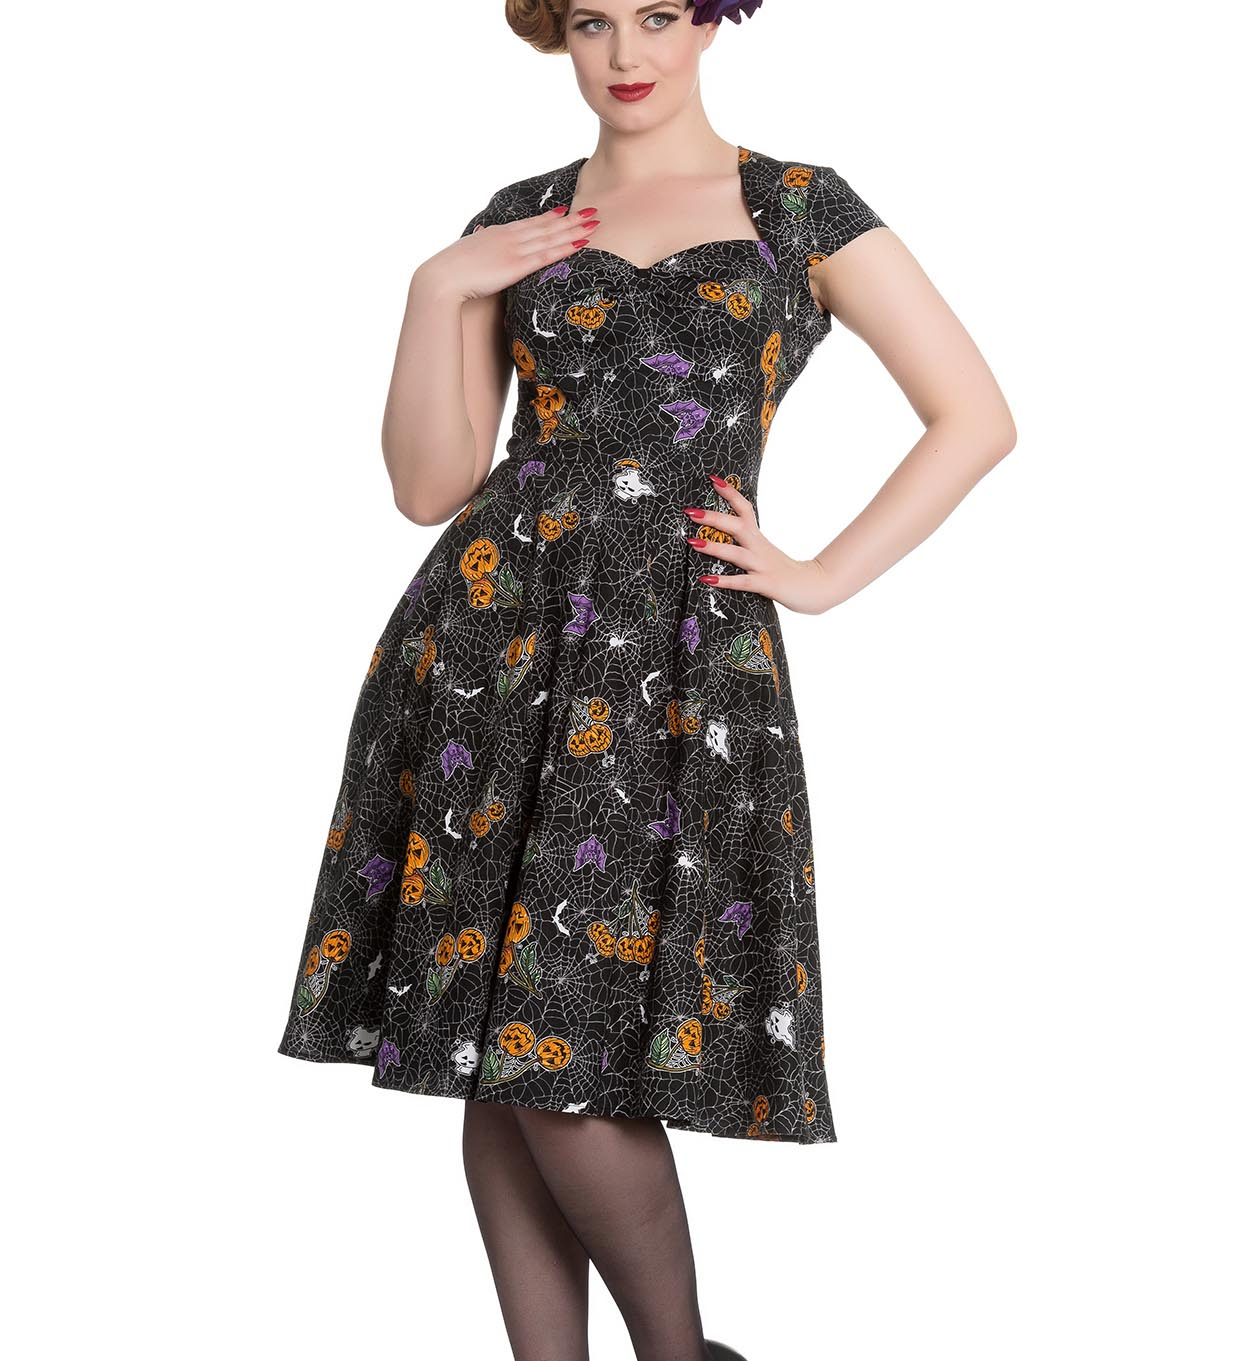 Hell-Bunny-Black-Pinup-50s-Goth-Webs-Dress-HARLOW-Halloween-All-Sizes thumbnail 15